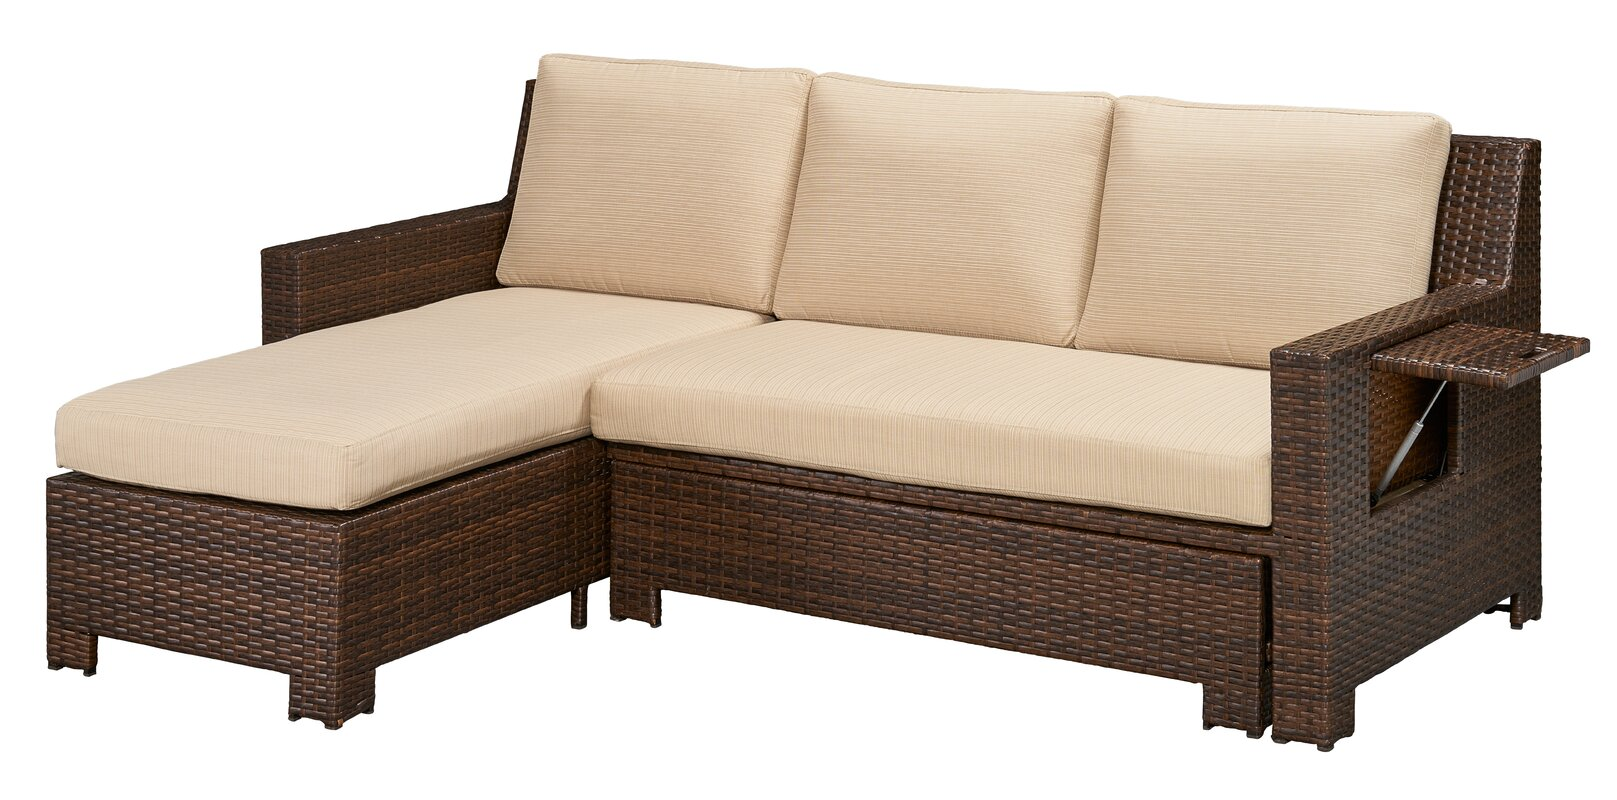 Awesome Ferndale Deck Convertible Sectional Sofa With Cushions